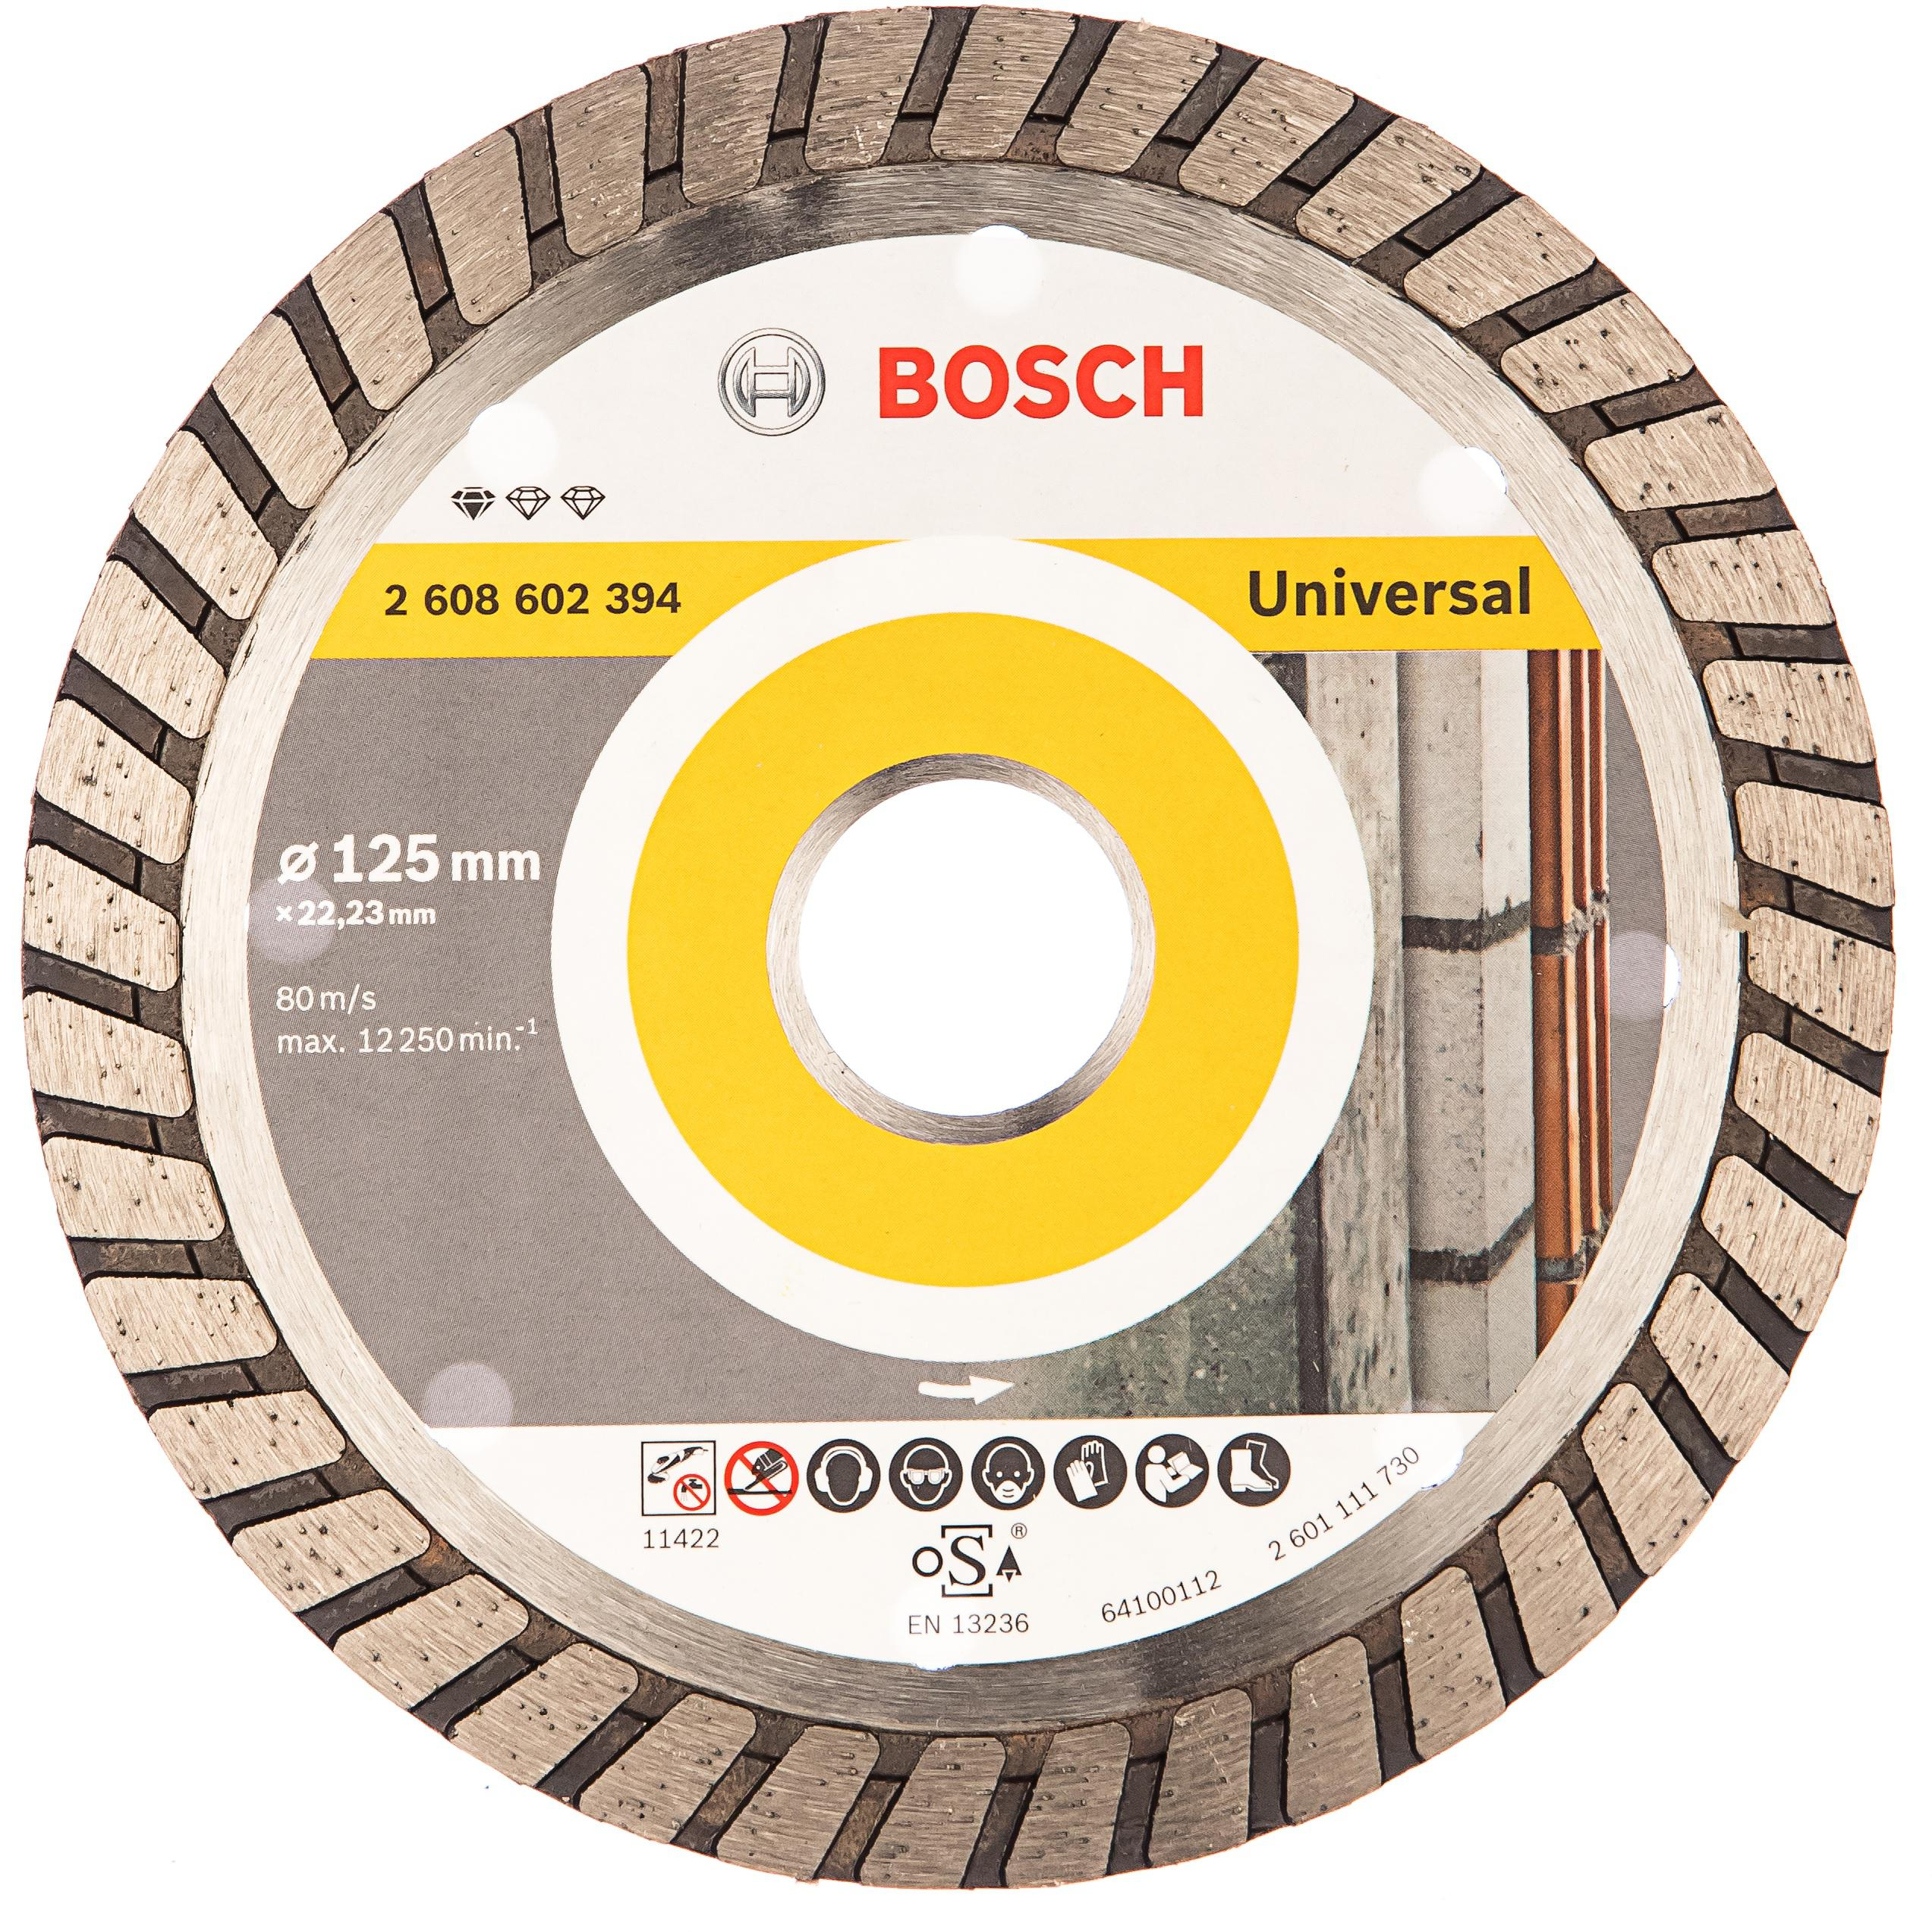 Круг алмазный Bosch Standard for universal turbo 125x22 турбо (2.608.602.394) диск отрезной алмазный турбо 125х22 2mm 20007 ottom 125x22 2mm